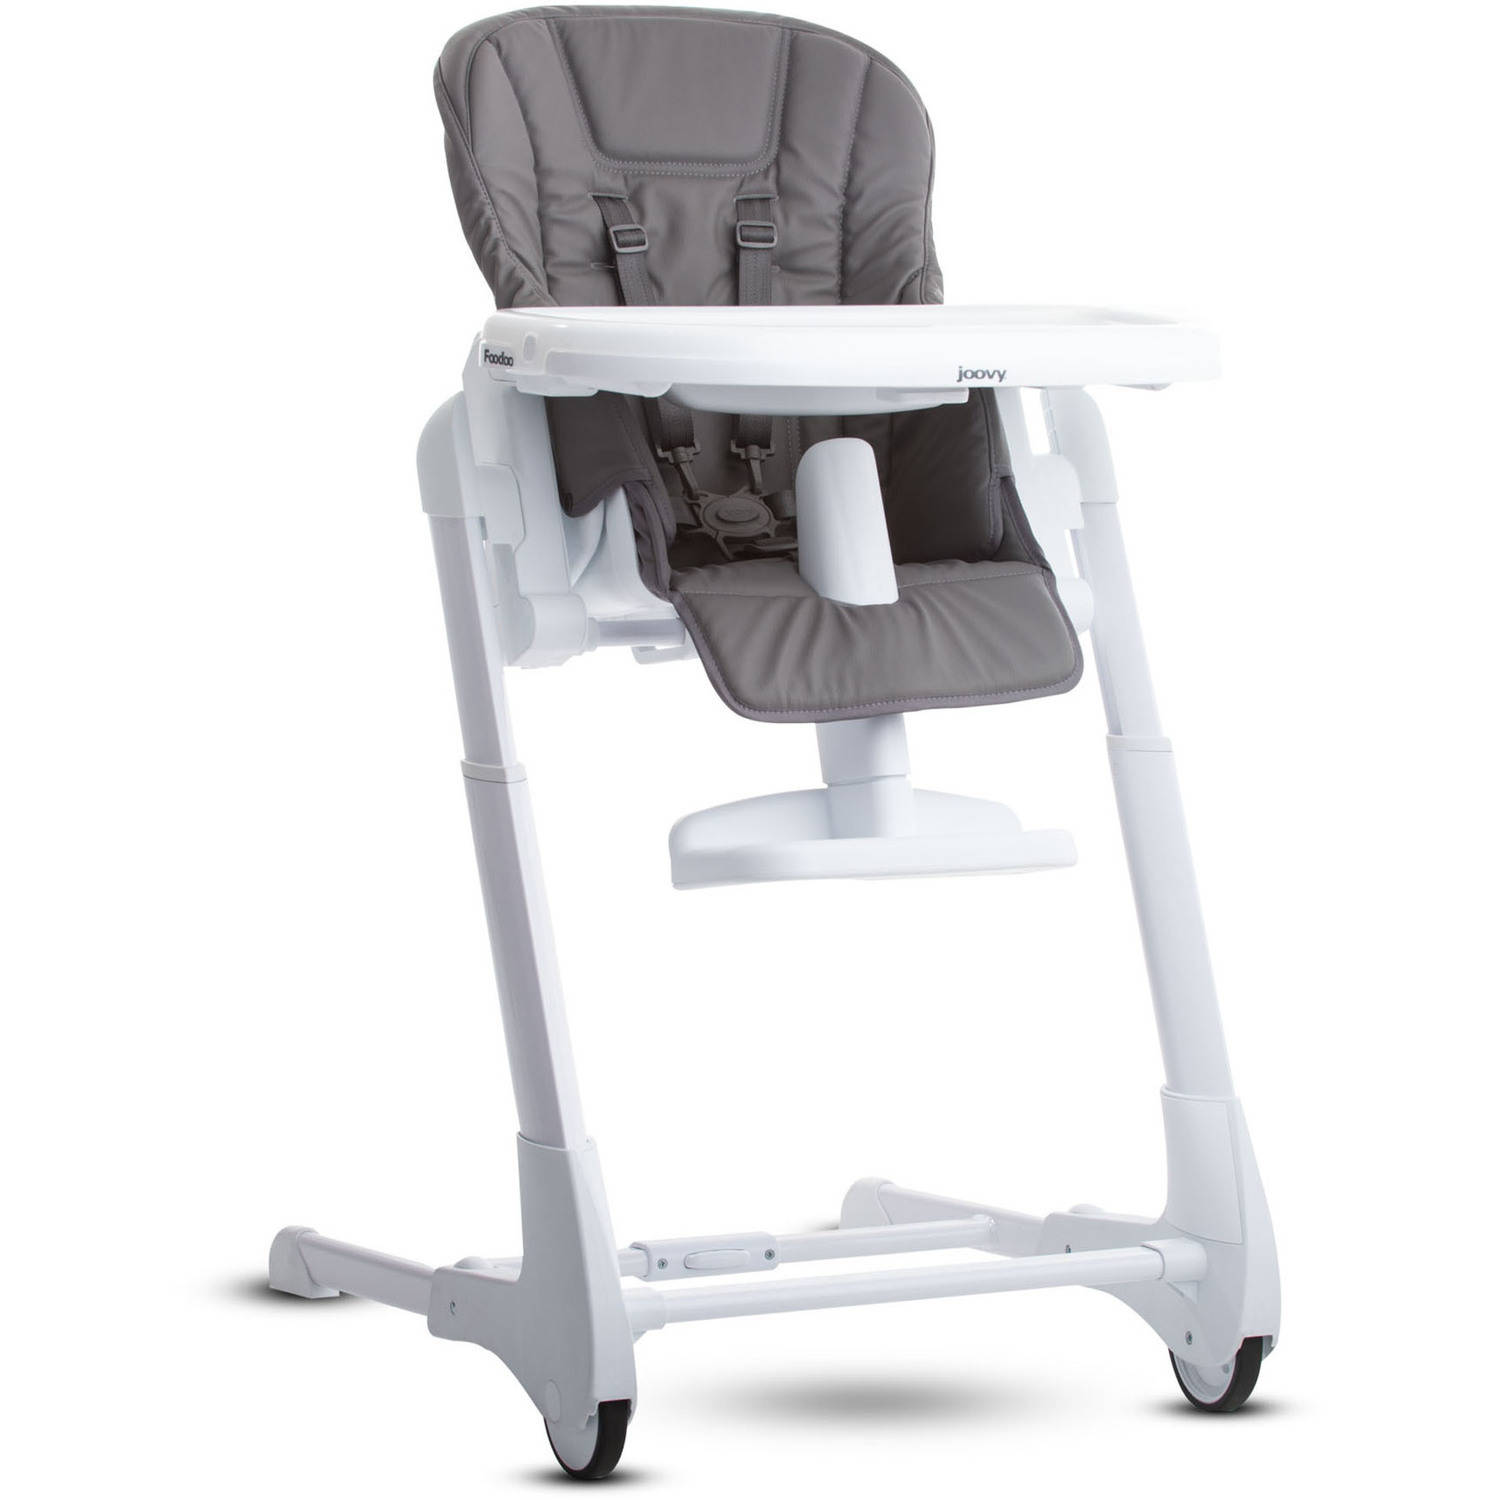 Joovy Foodoo Baby Height Adjustable High Chair, Charcoal by Joovy